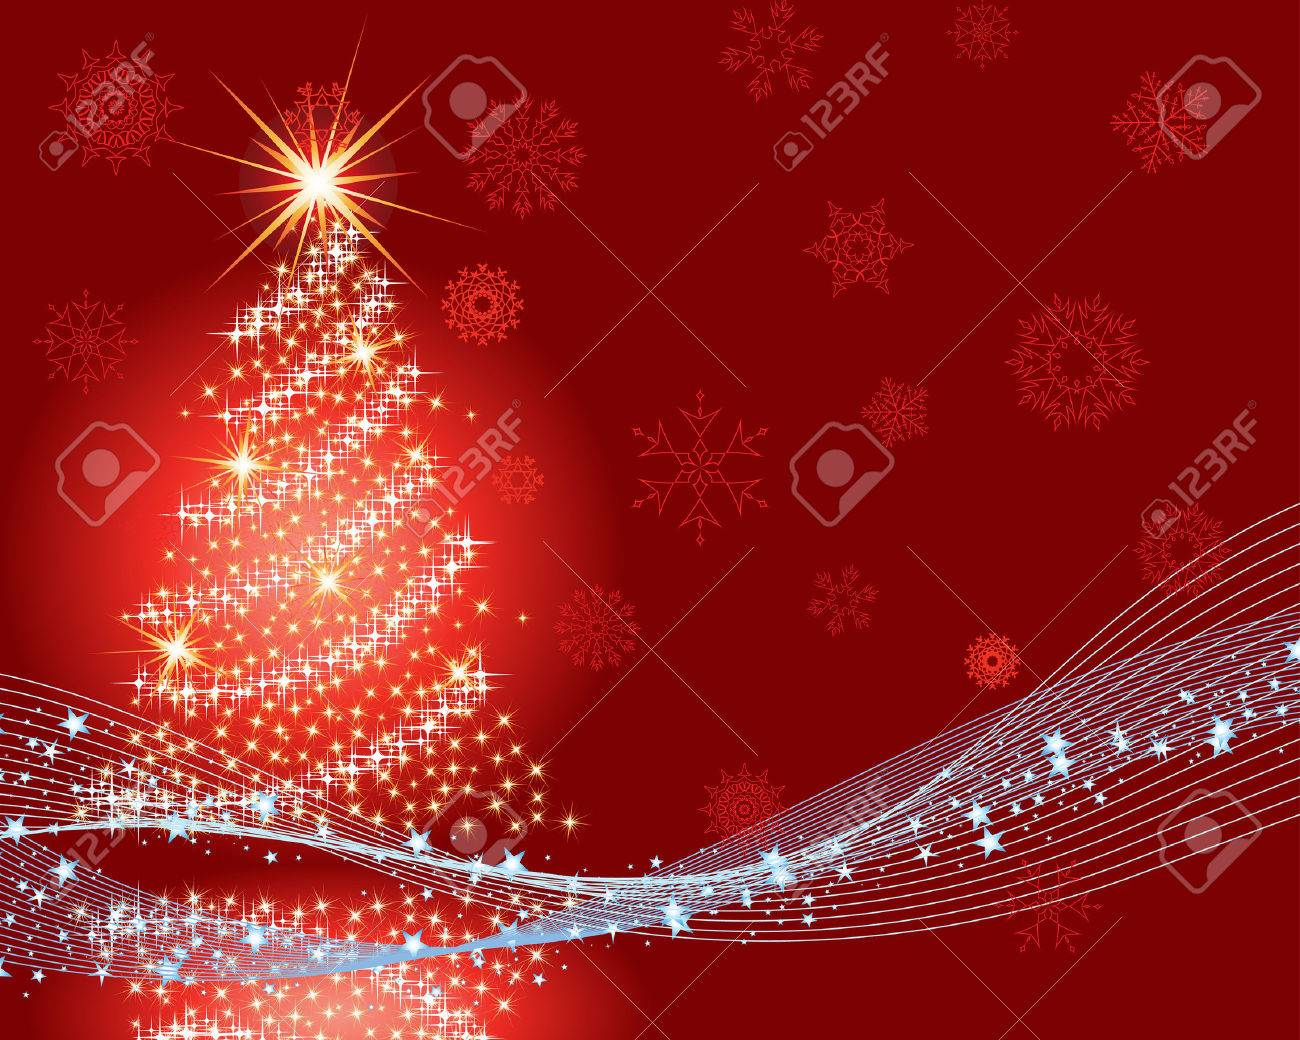 Beautiful vector christmas new year background for design use - Beautiful Vector Christmas New Year Background For Design Use Stock Vector 5868452